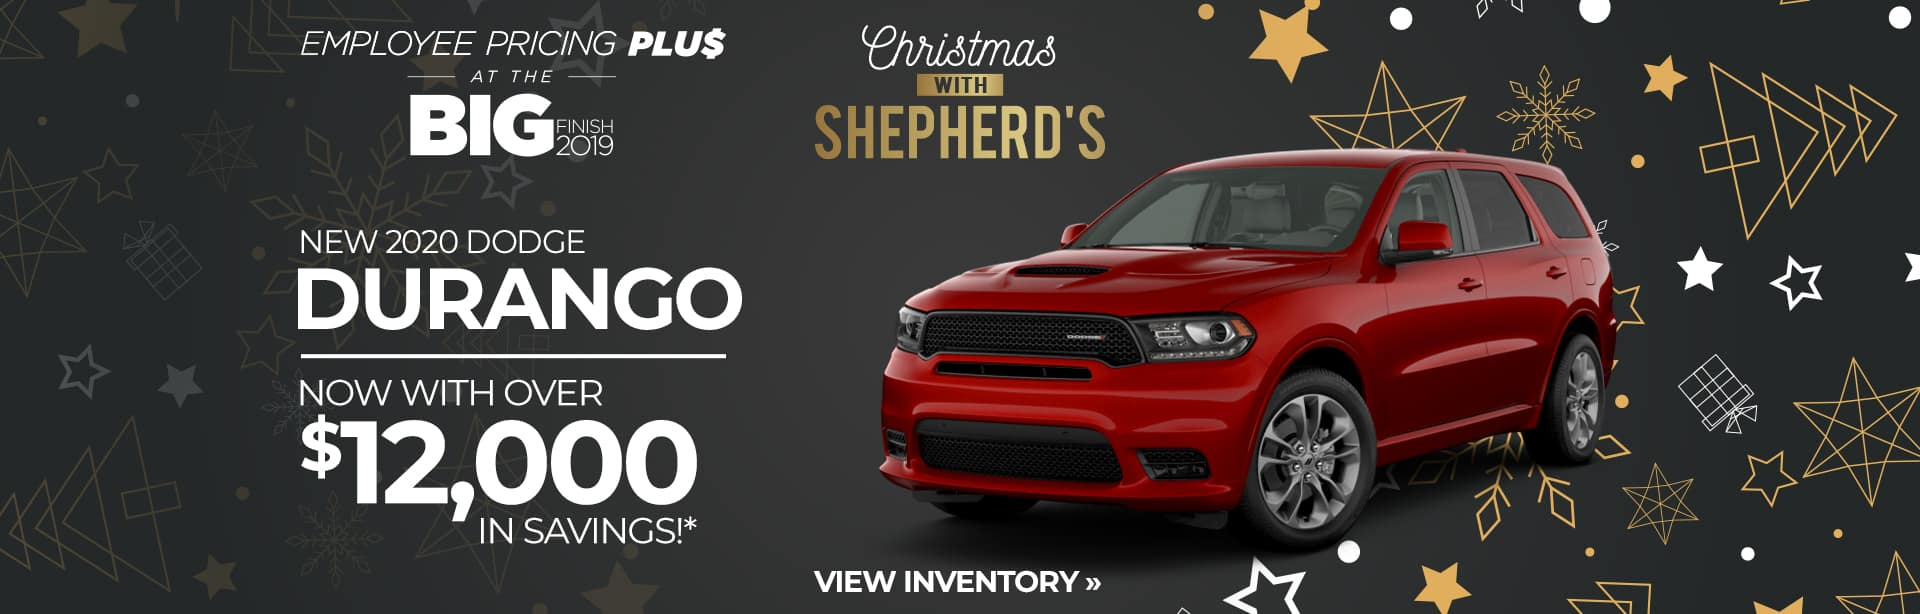 Save up to $12,000 on a New Dodge Durango near Angola, Indiana